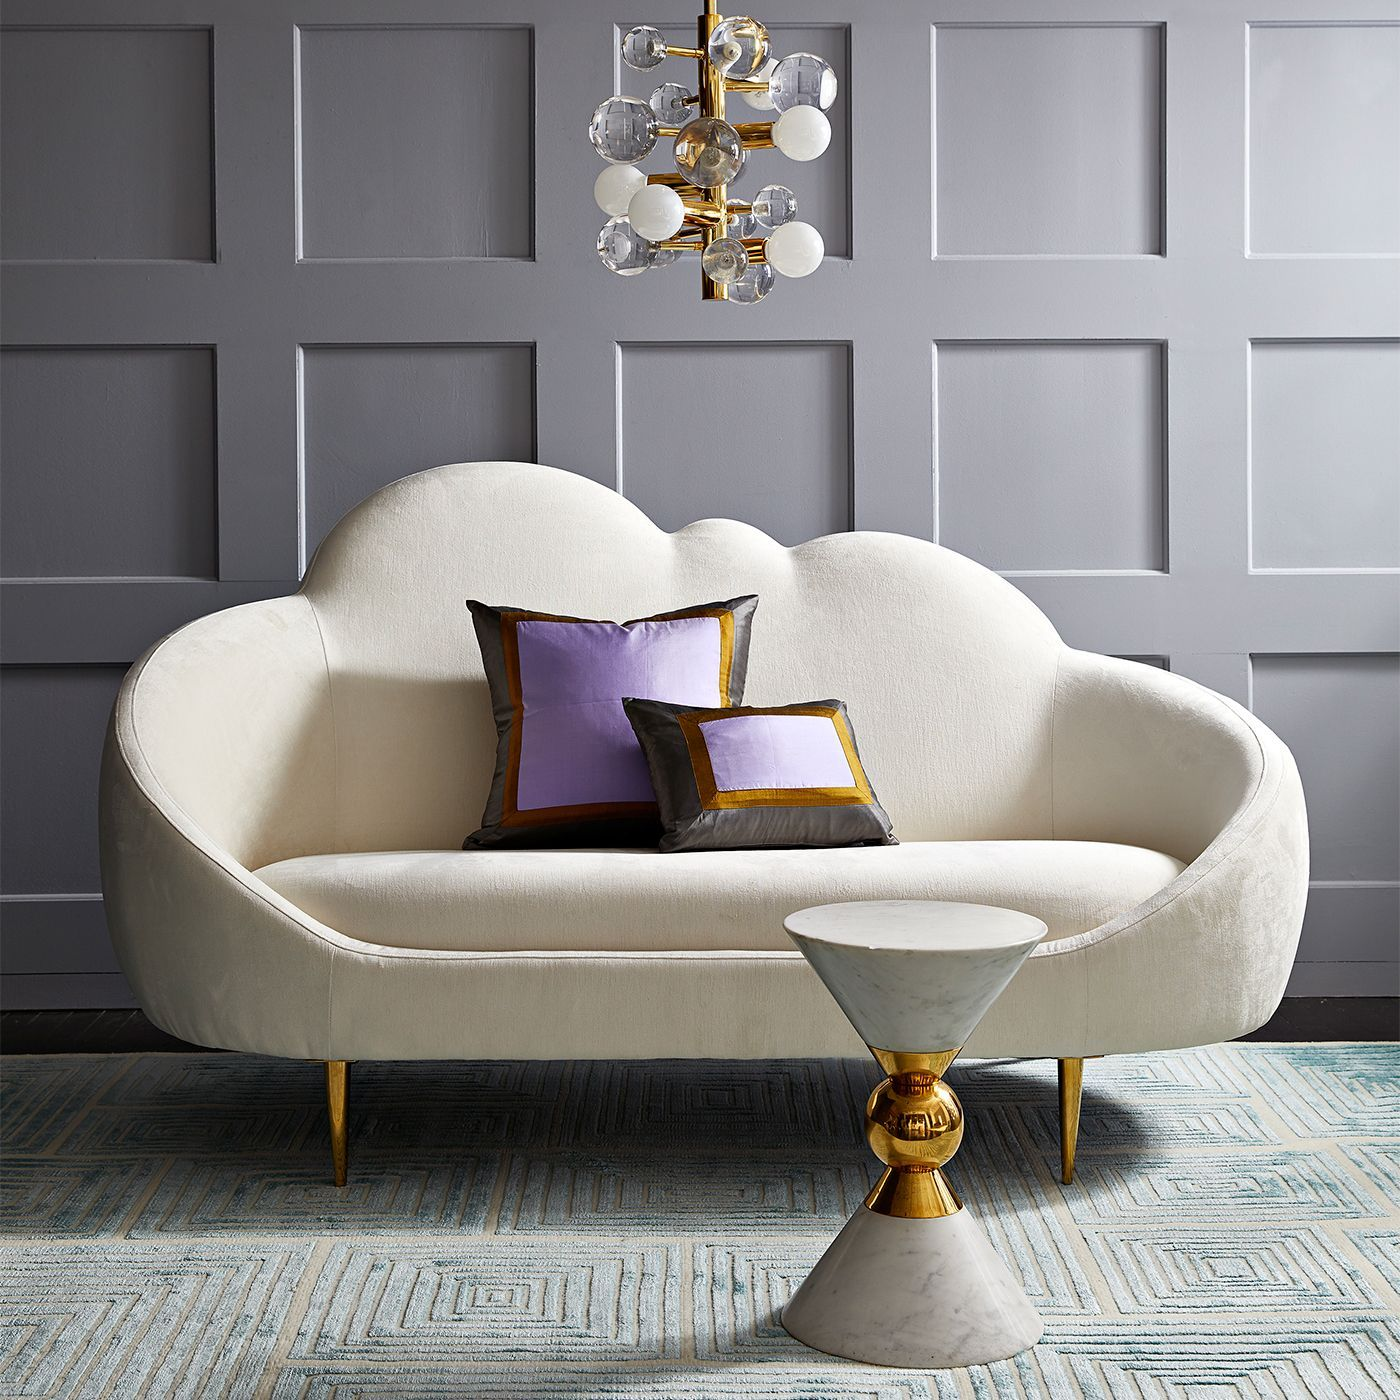 Get A Look At Jonathan Adler S Spring Catalog Modern Sofa Designs Contemporary Furniture Design Furniture Design